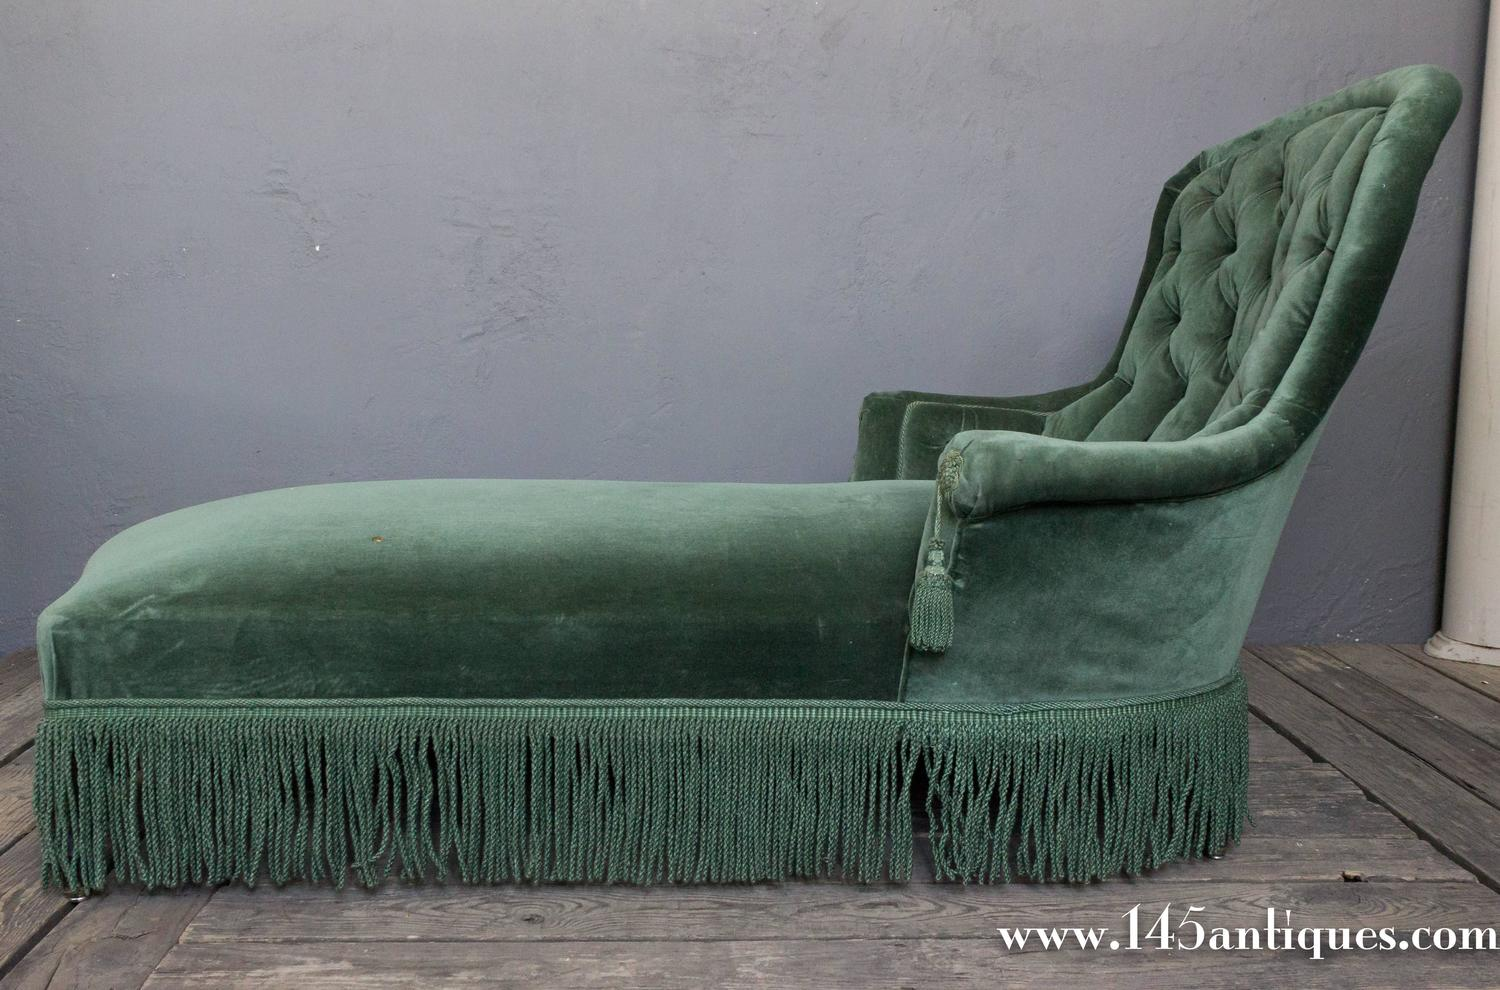 Green velvet chaise lounge 19th century napoleon iii for Buy chaise lounge uk